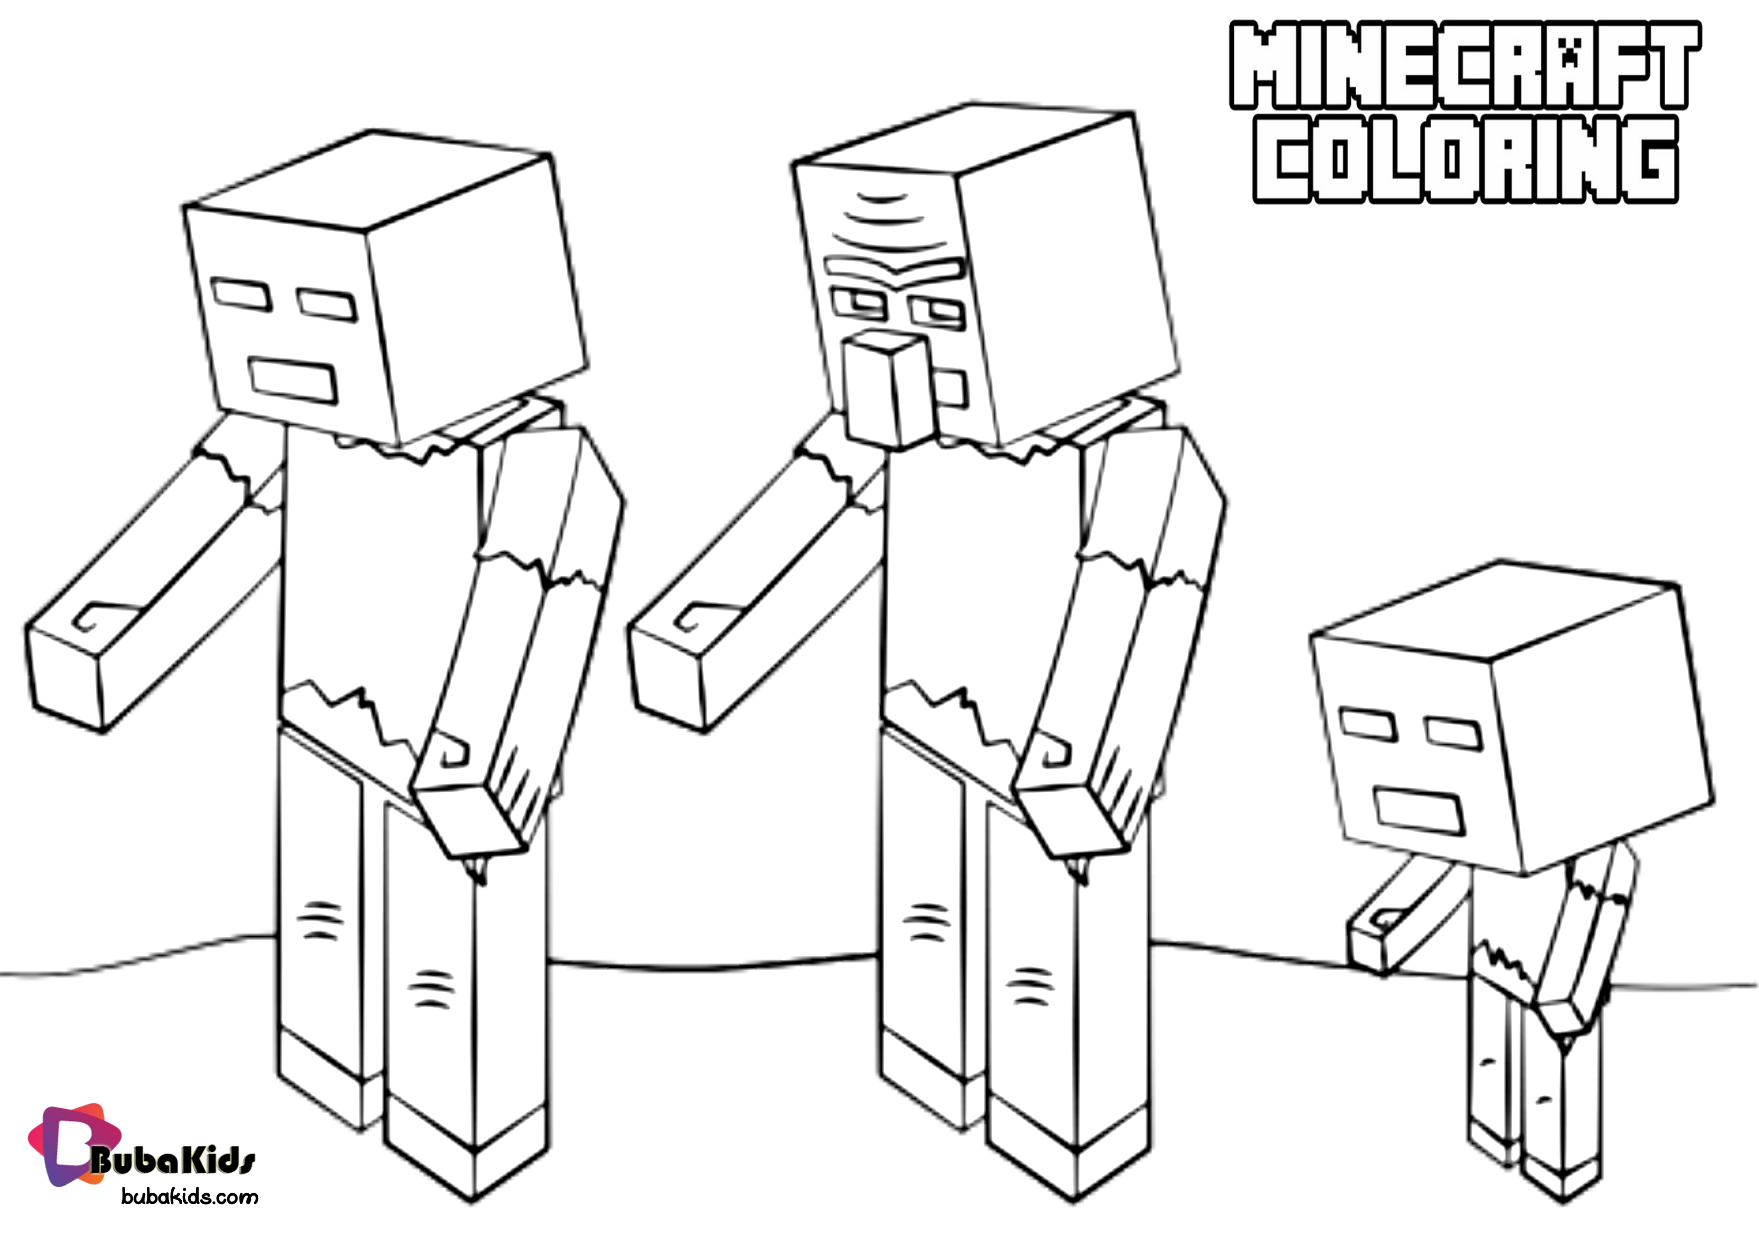 Printable Minecraft Zombies coloring pages. | Minecraft coloring ... | 1237x1759